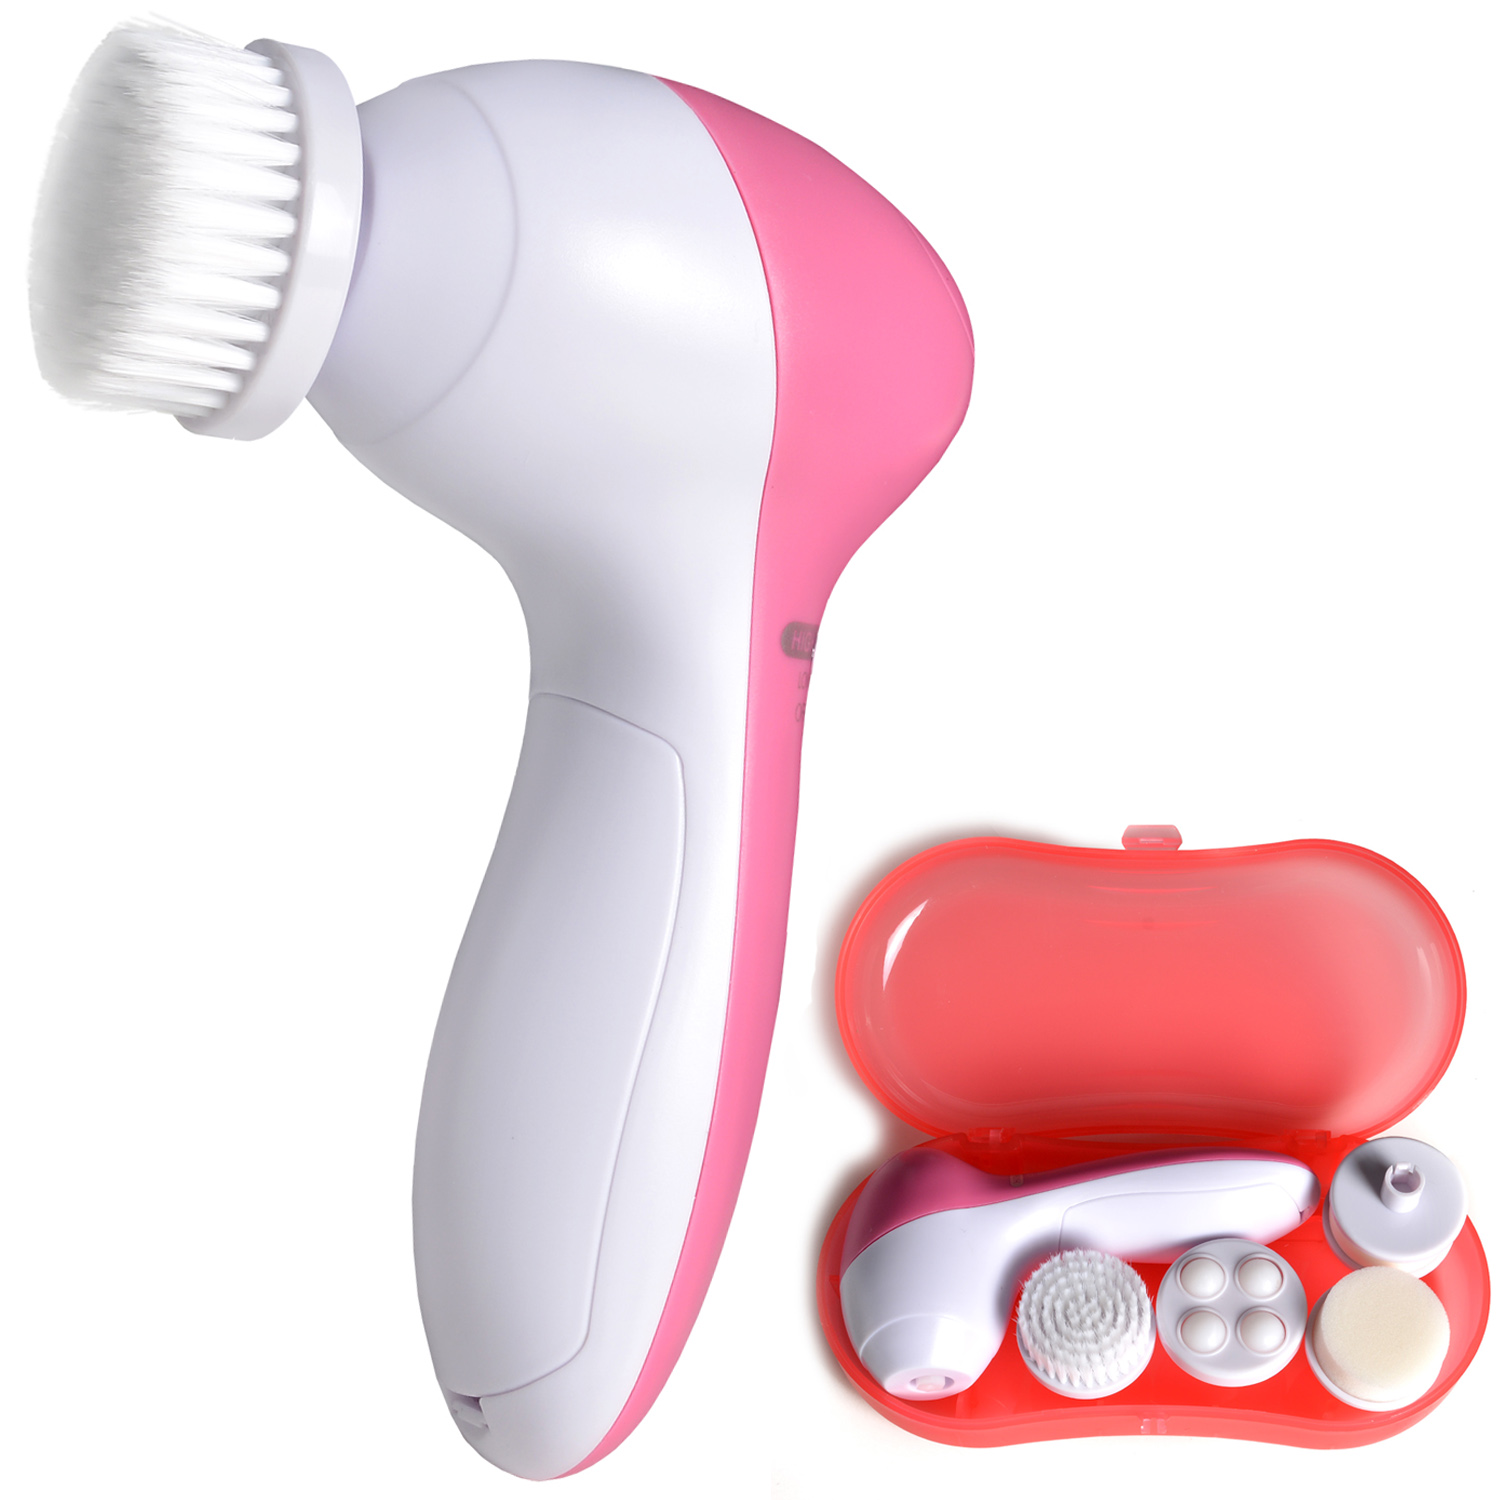 5 in 1 Multifunction Electric Electronic Beauty Face Facial Cleansing Spin Brush and Massager Scrubber Exfoliat